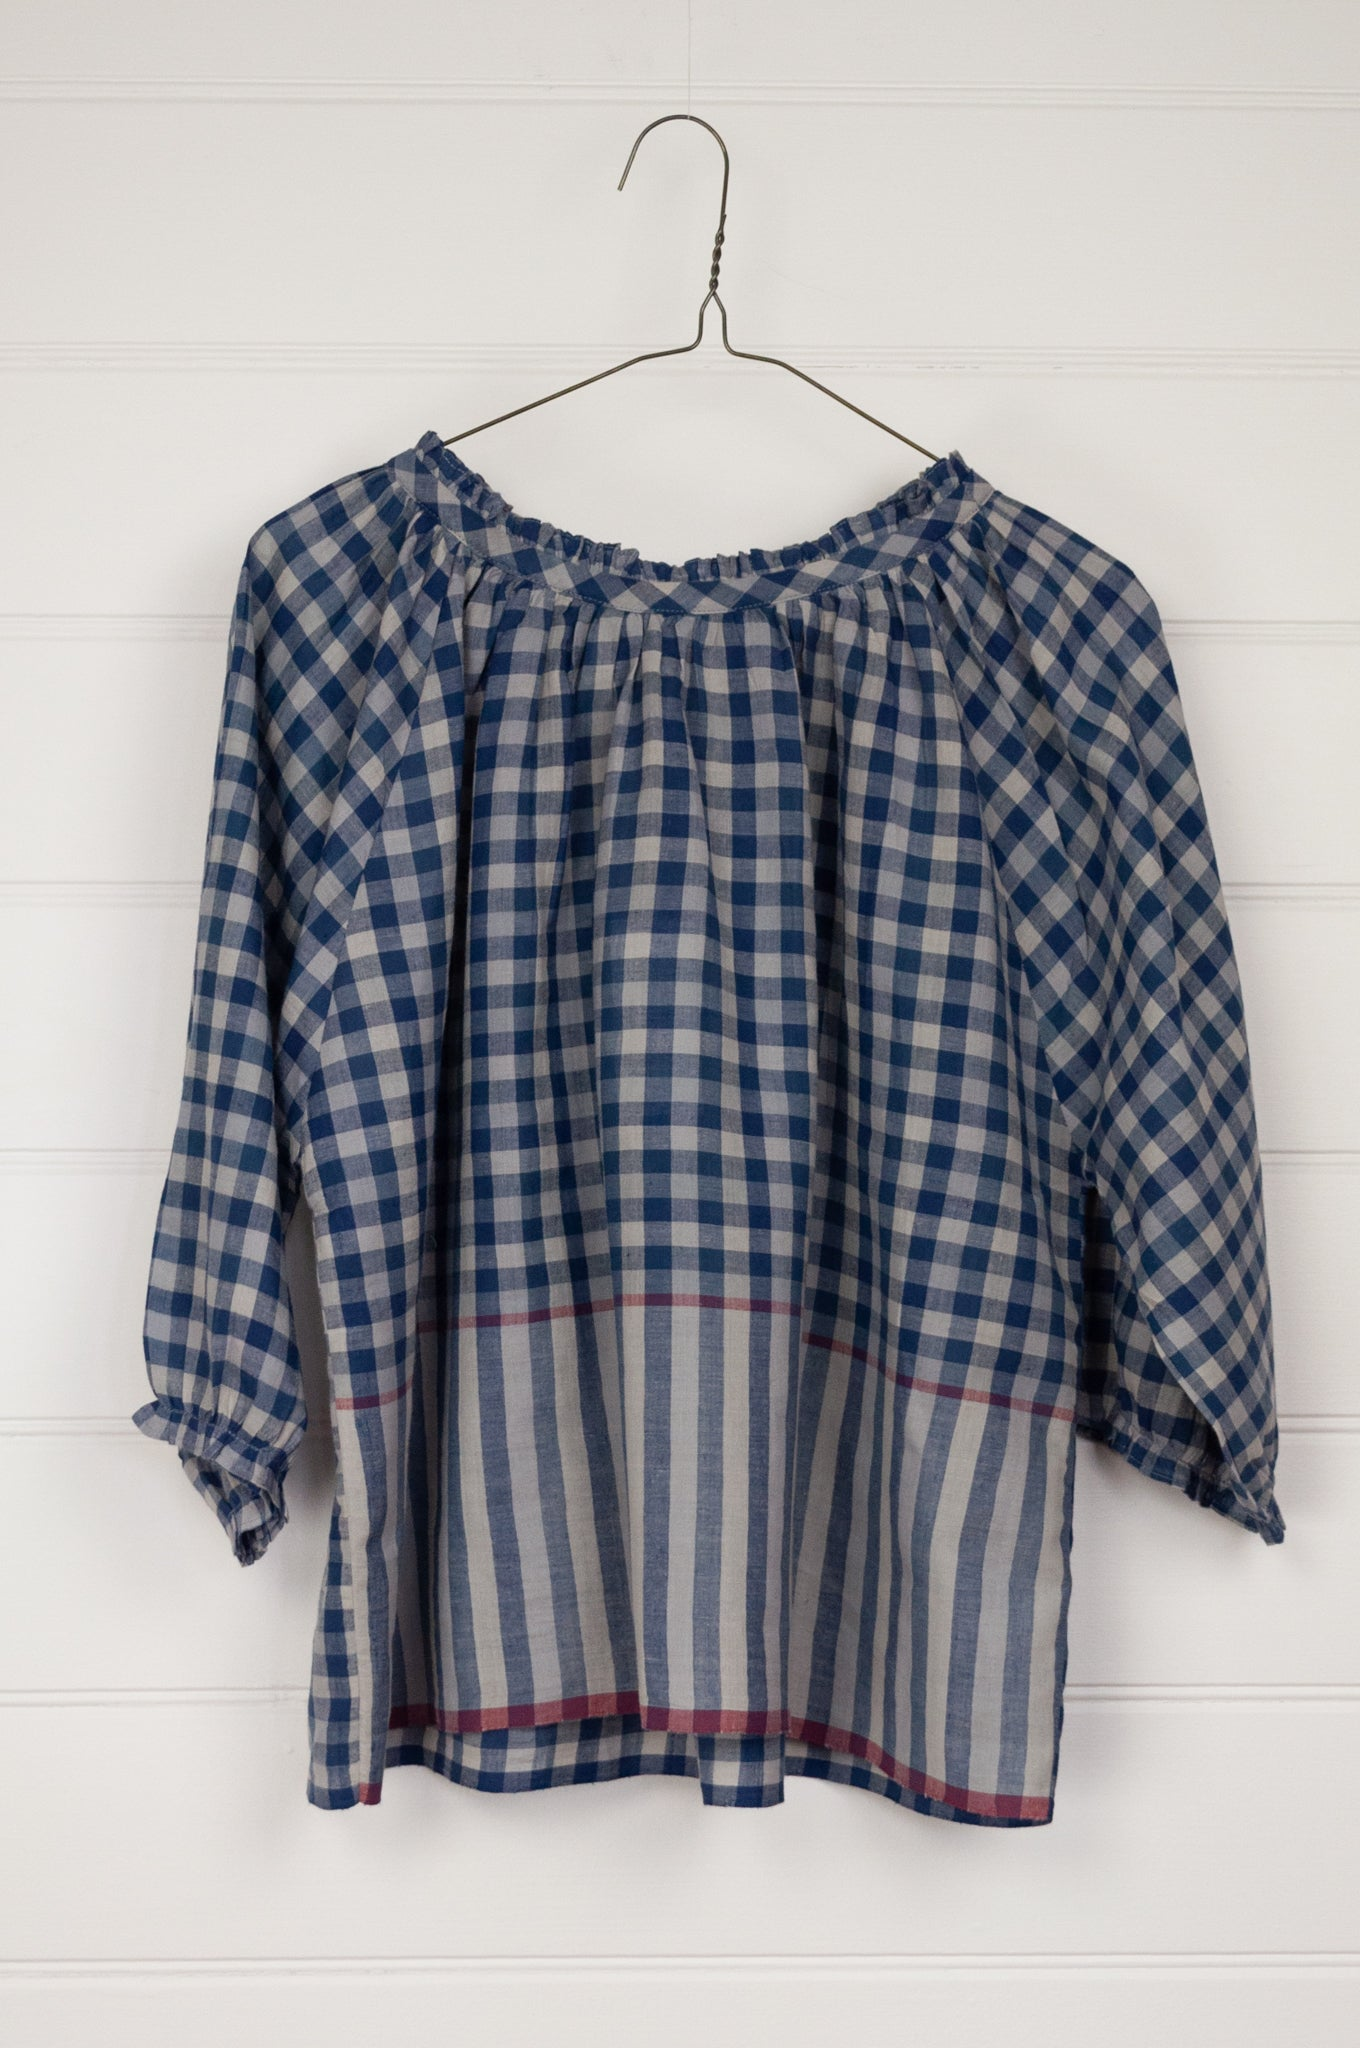 Runaway Bicycle Mary gathered neck and three quarter gathered sleeve top in blue on blue gingham khadi cotton with raspberry red selvedge details.